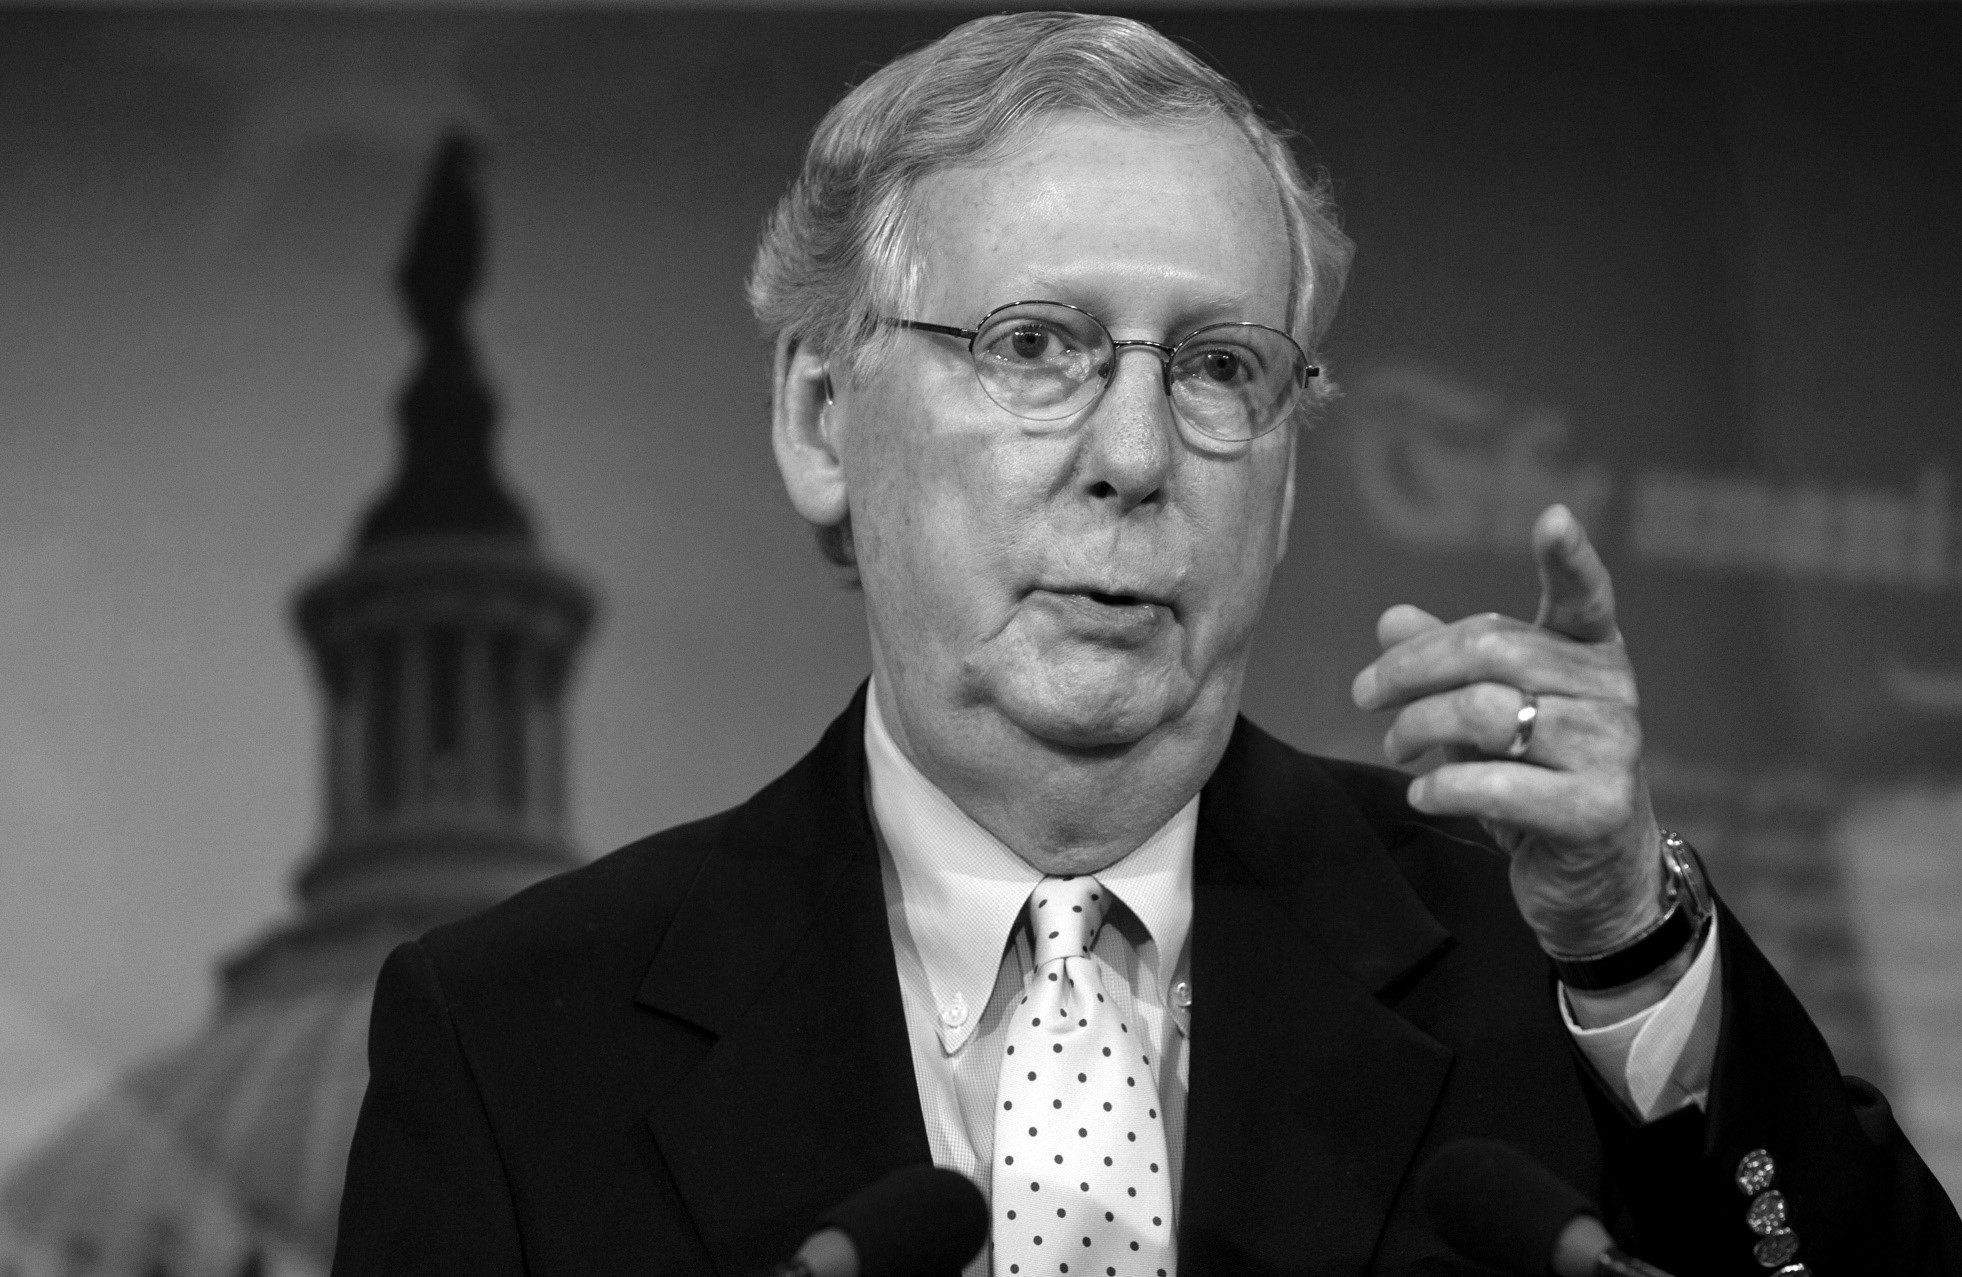 In this photo taken Aug. 6, Senate Majority Leader Mitch McConnell, R-Ky. speaks during a news conference on Capitol Hill in Washington. Senate Republicans want a say on the Iran nuclear deal but Democrats plan to block them.